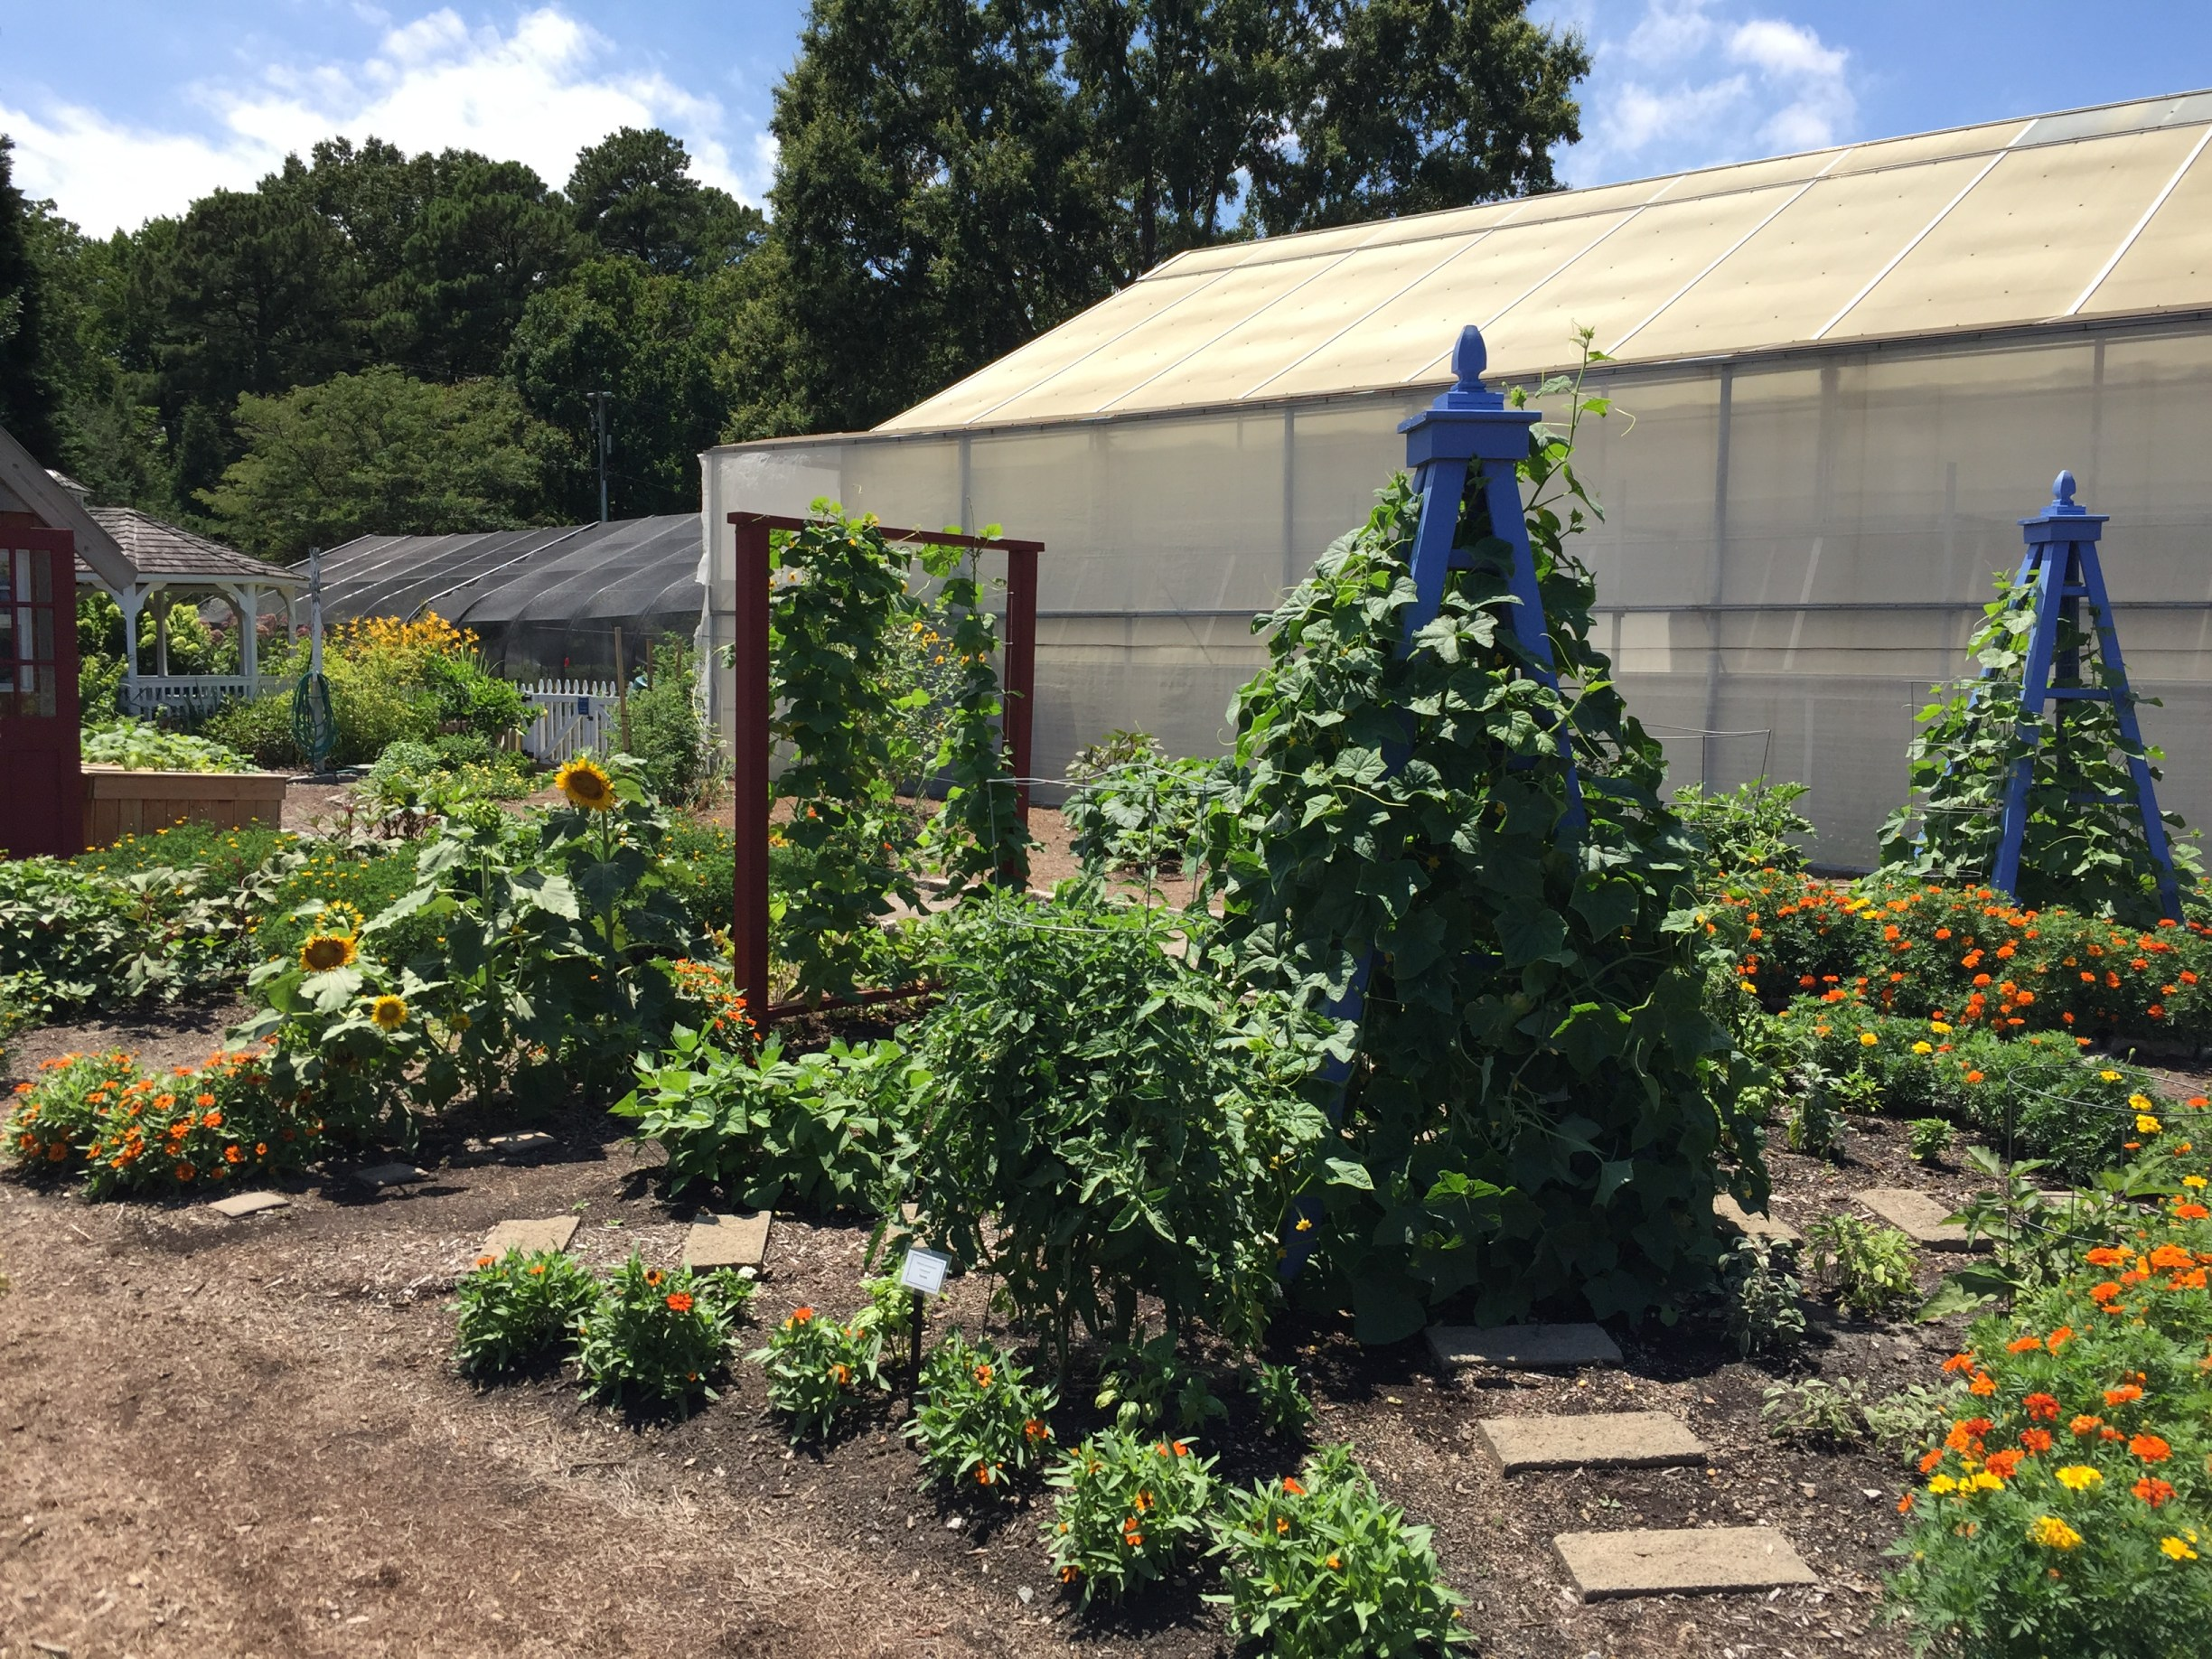 The Kitchen Garden has vegetables interplanted with herbs and flowers. Photo © 2018 Elaine Mills.